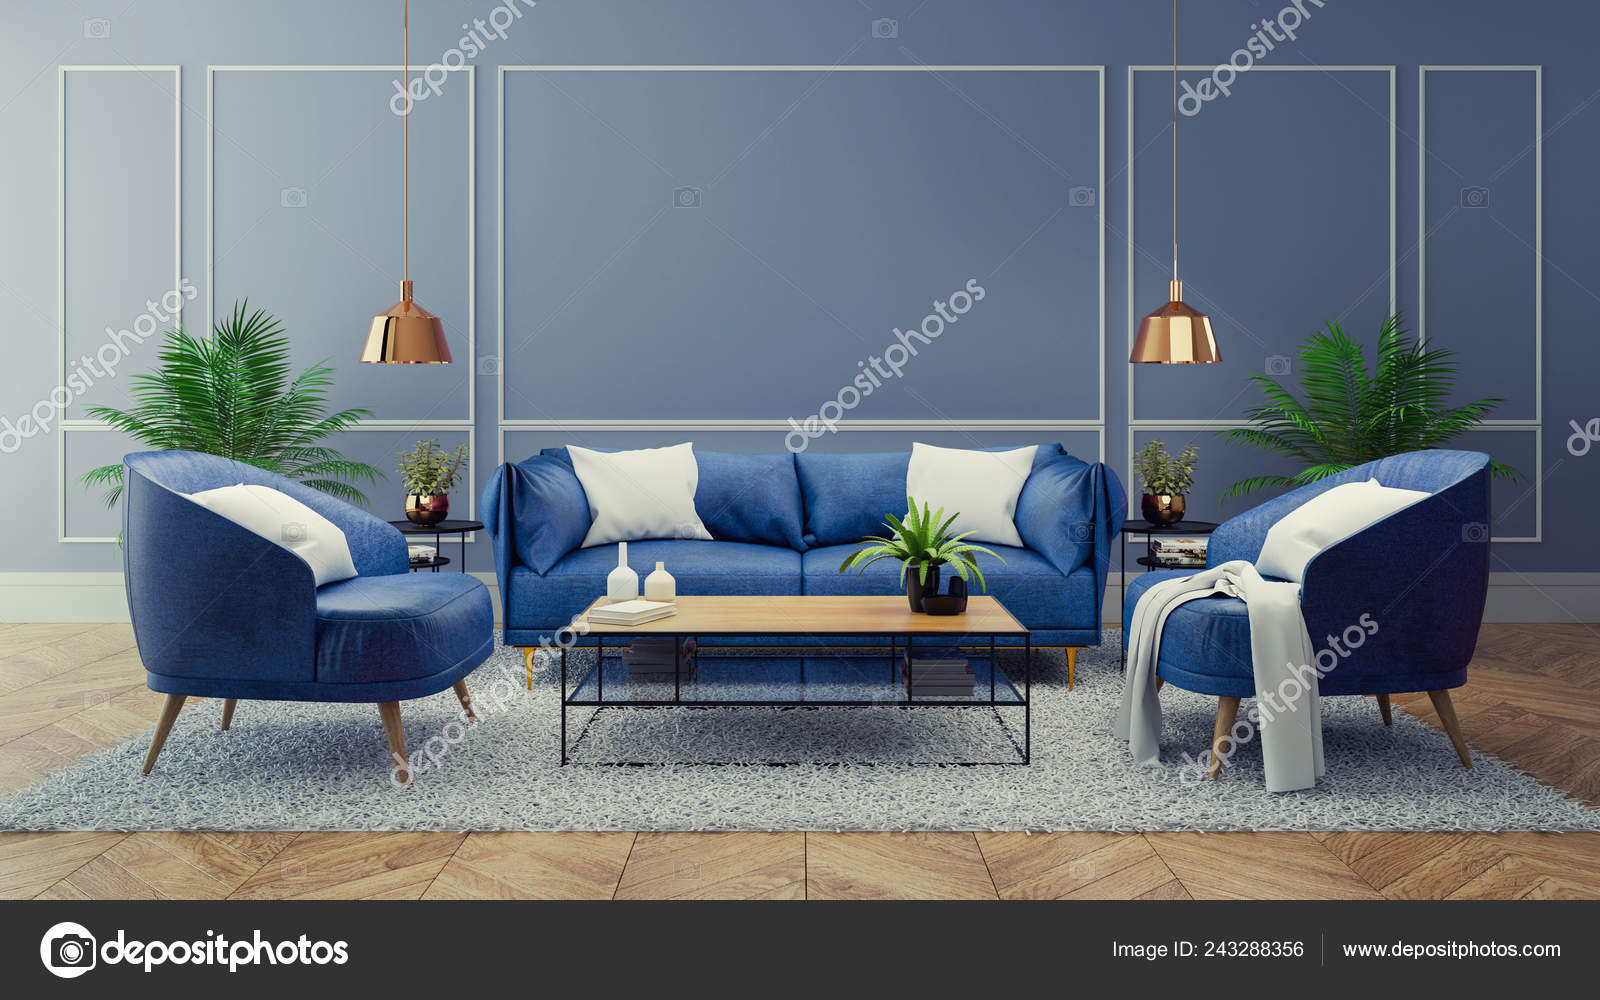 Luxury Modern Interior Living Room Blue Room Decor Concept Blue Stock Photo Image By Leksuperphototwo Gmail Com 243288356